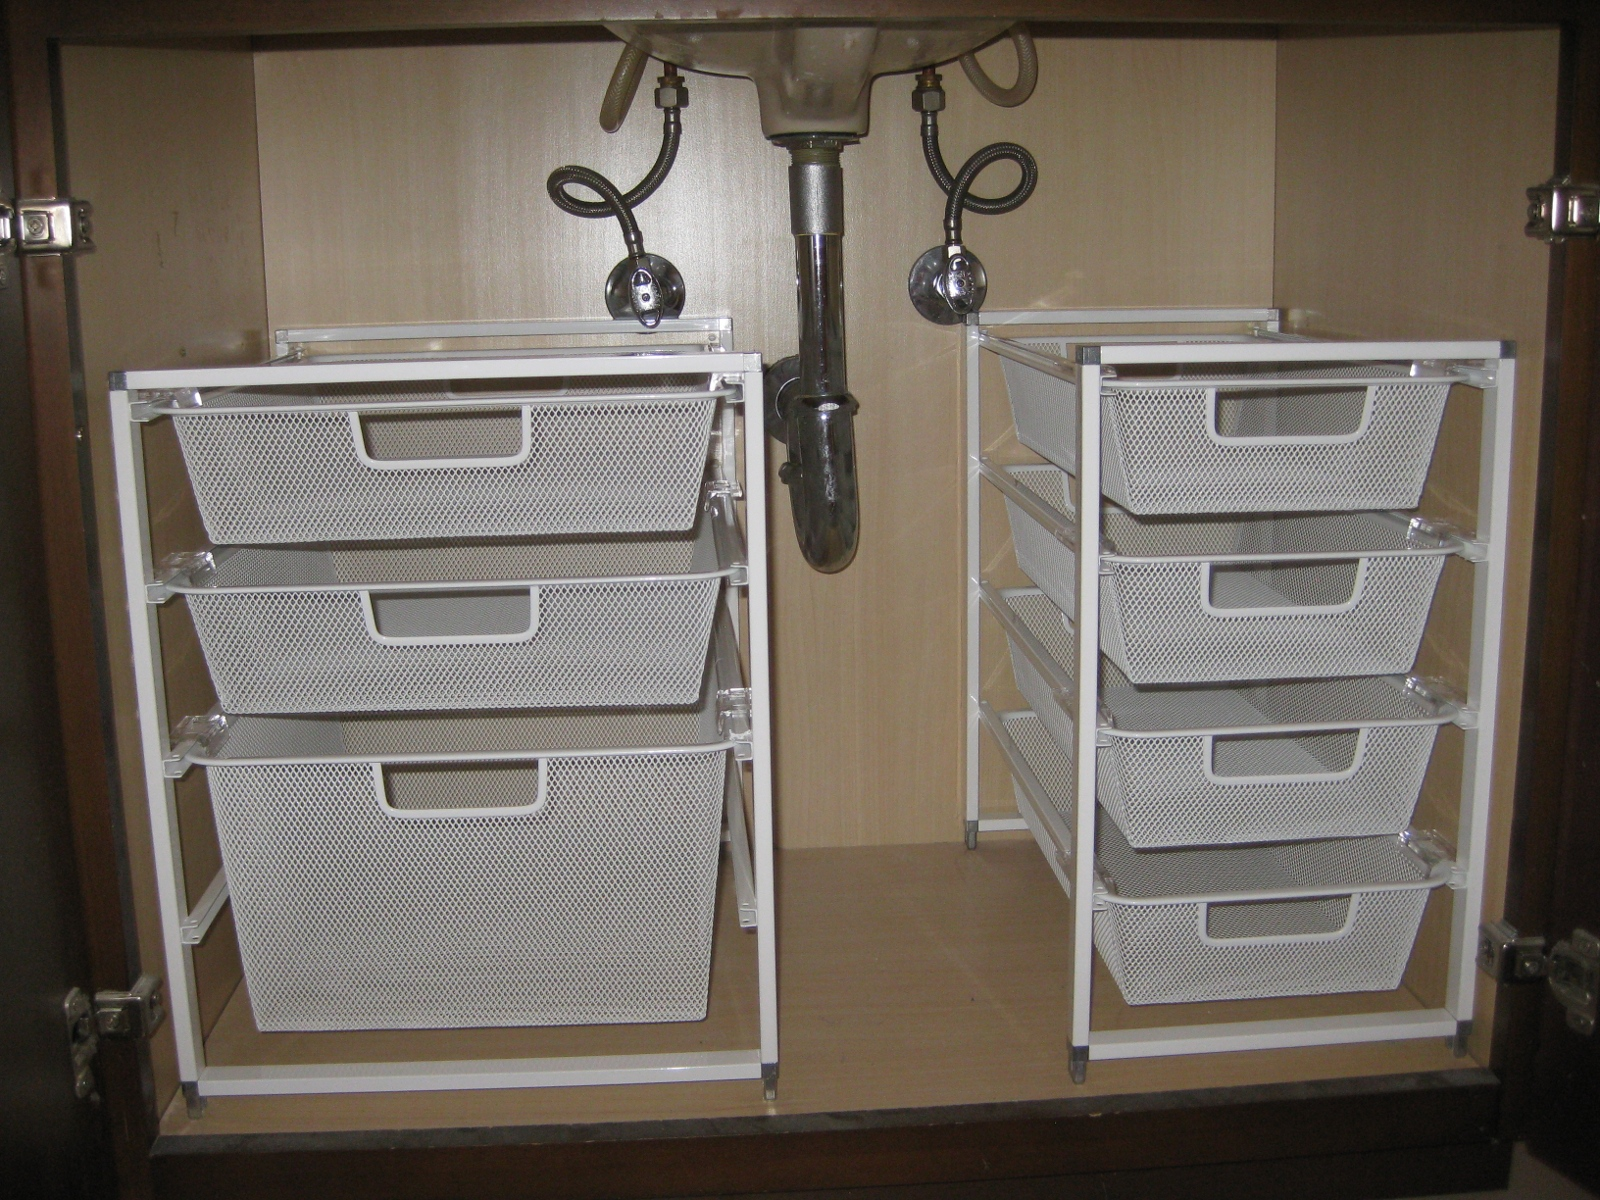 Under the sink organization pleia2 39 s blog for Bathroom organizers